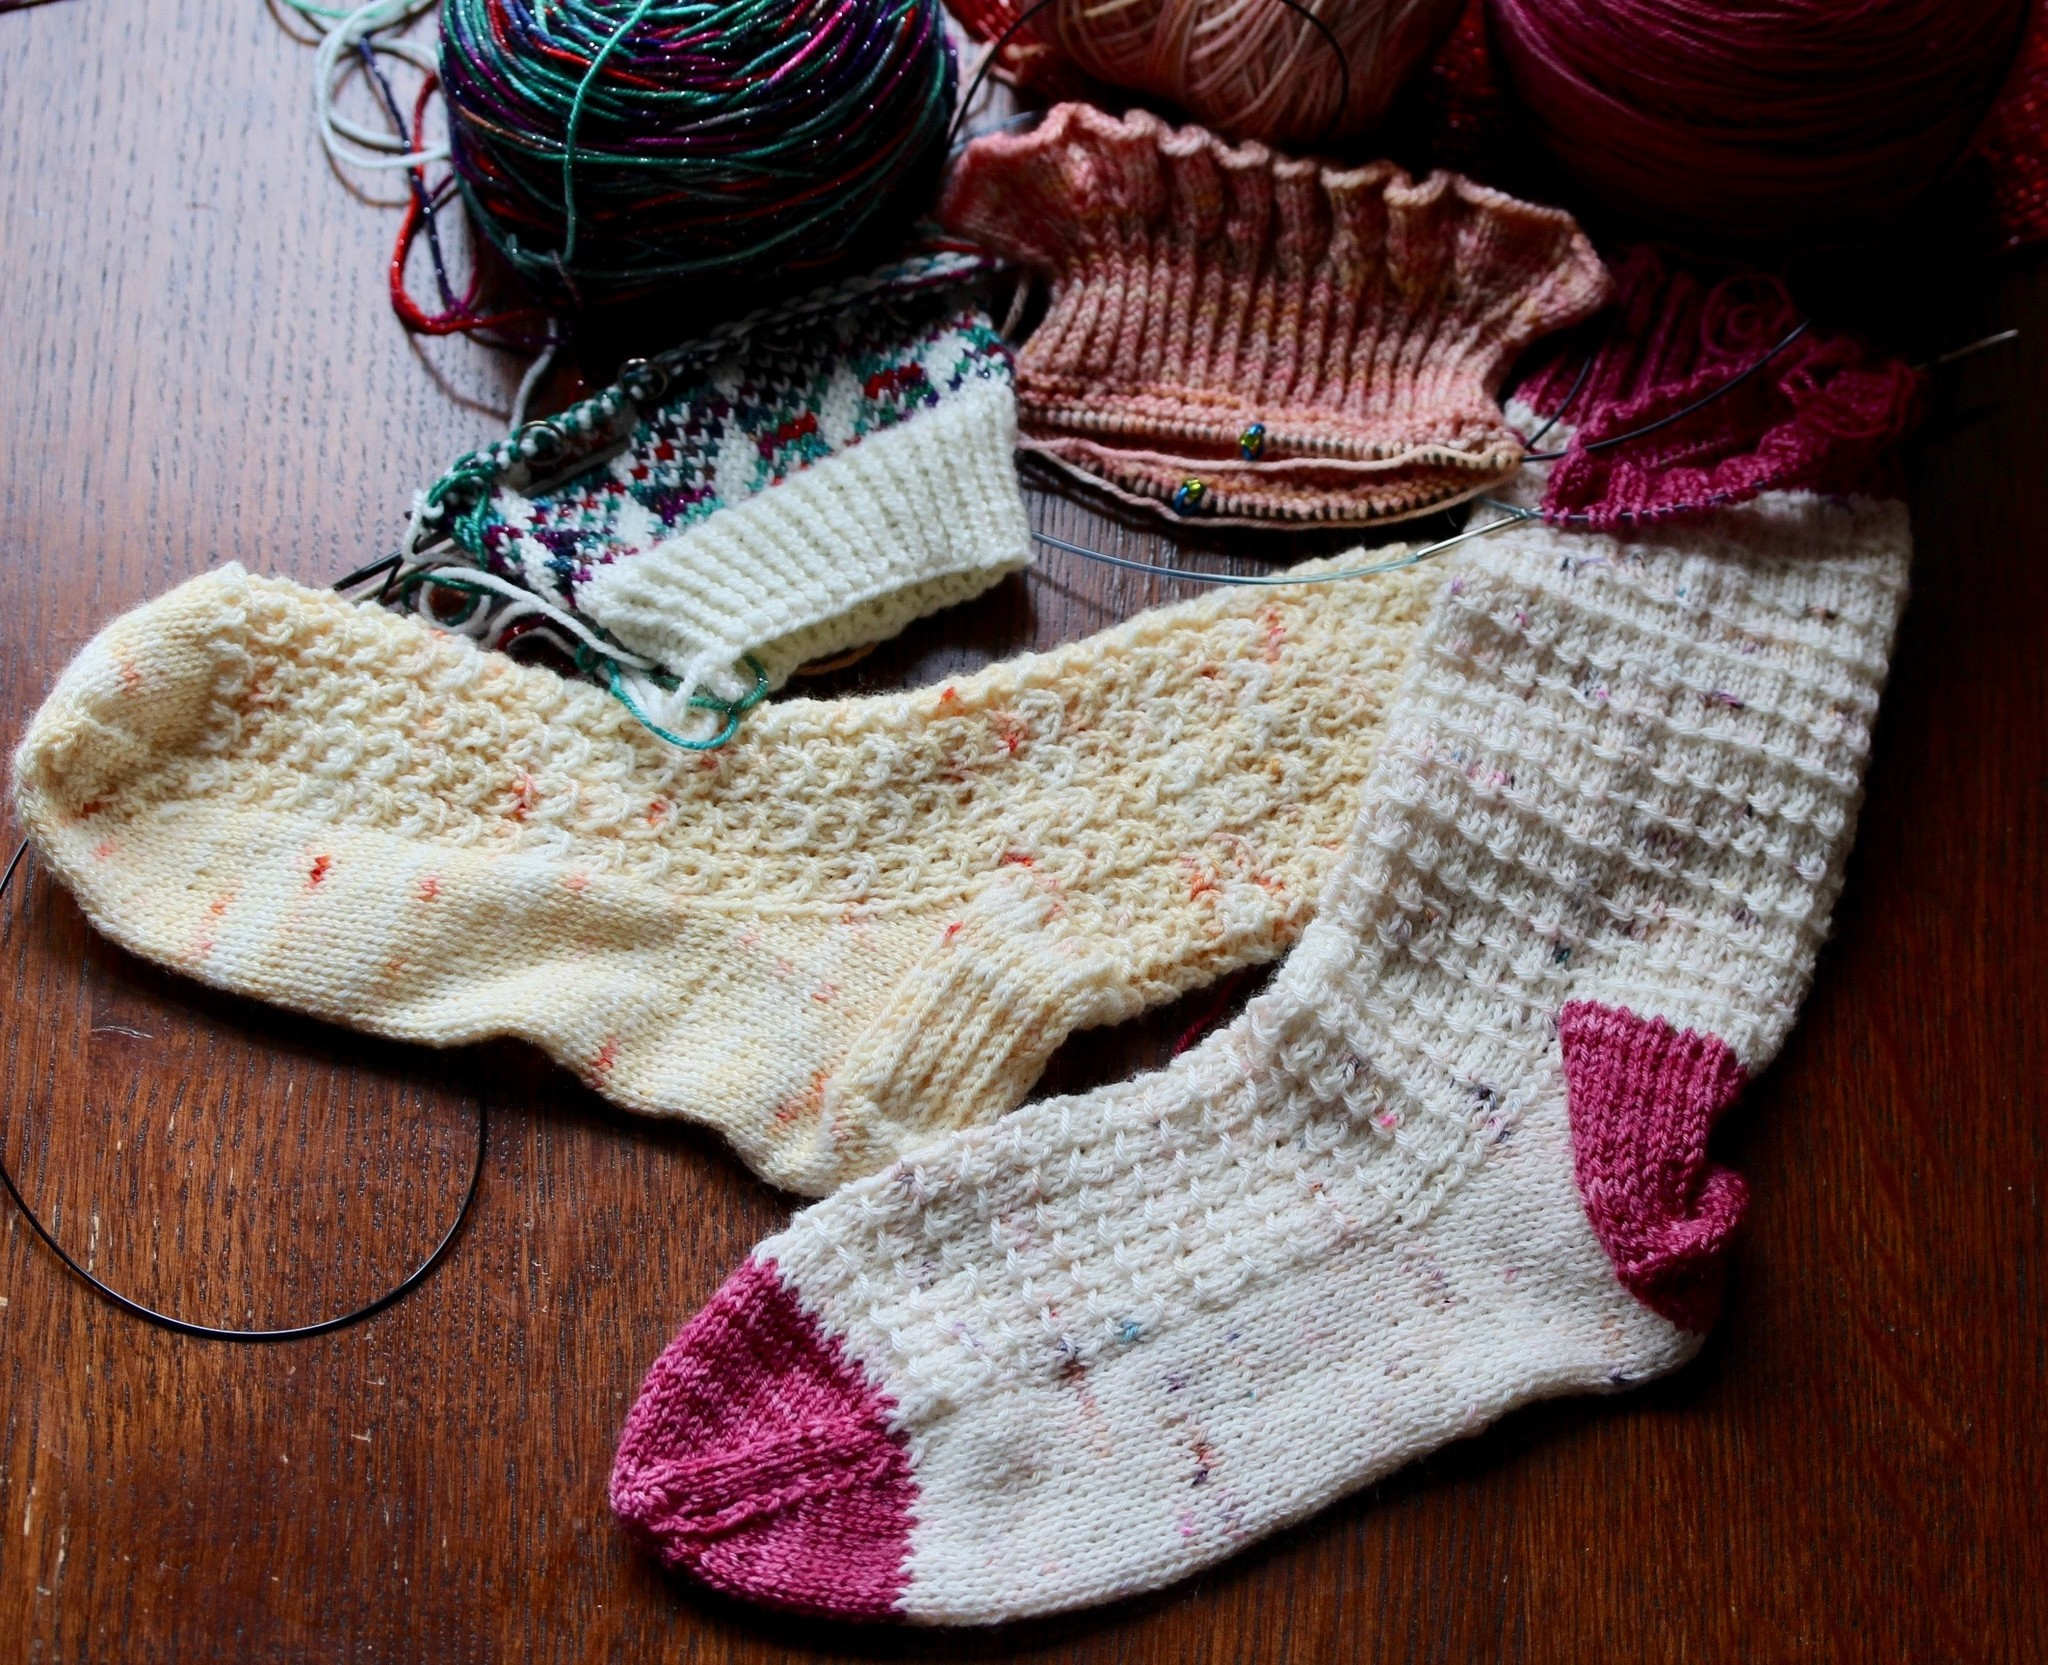 Summer Socks Revisited